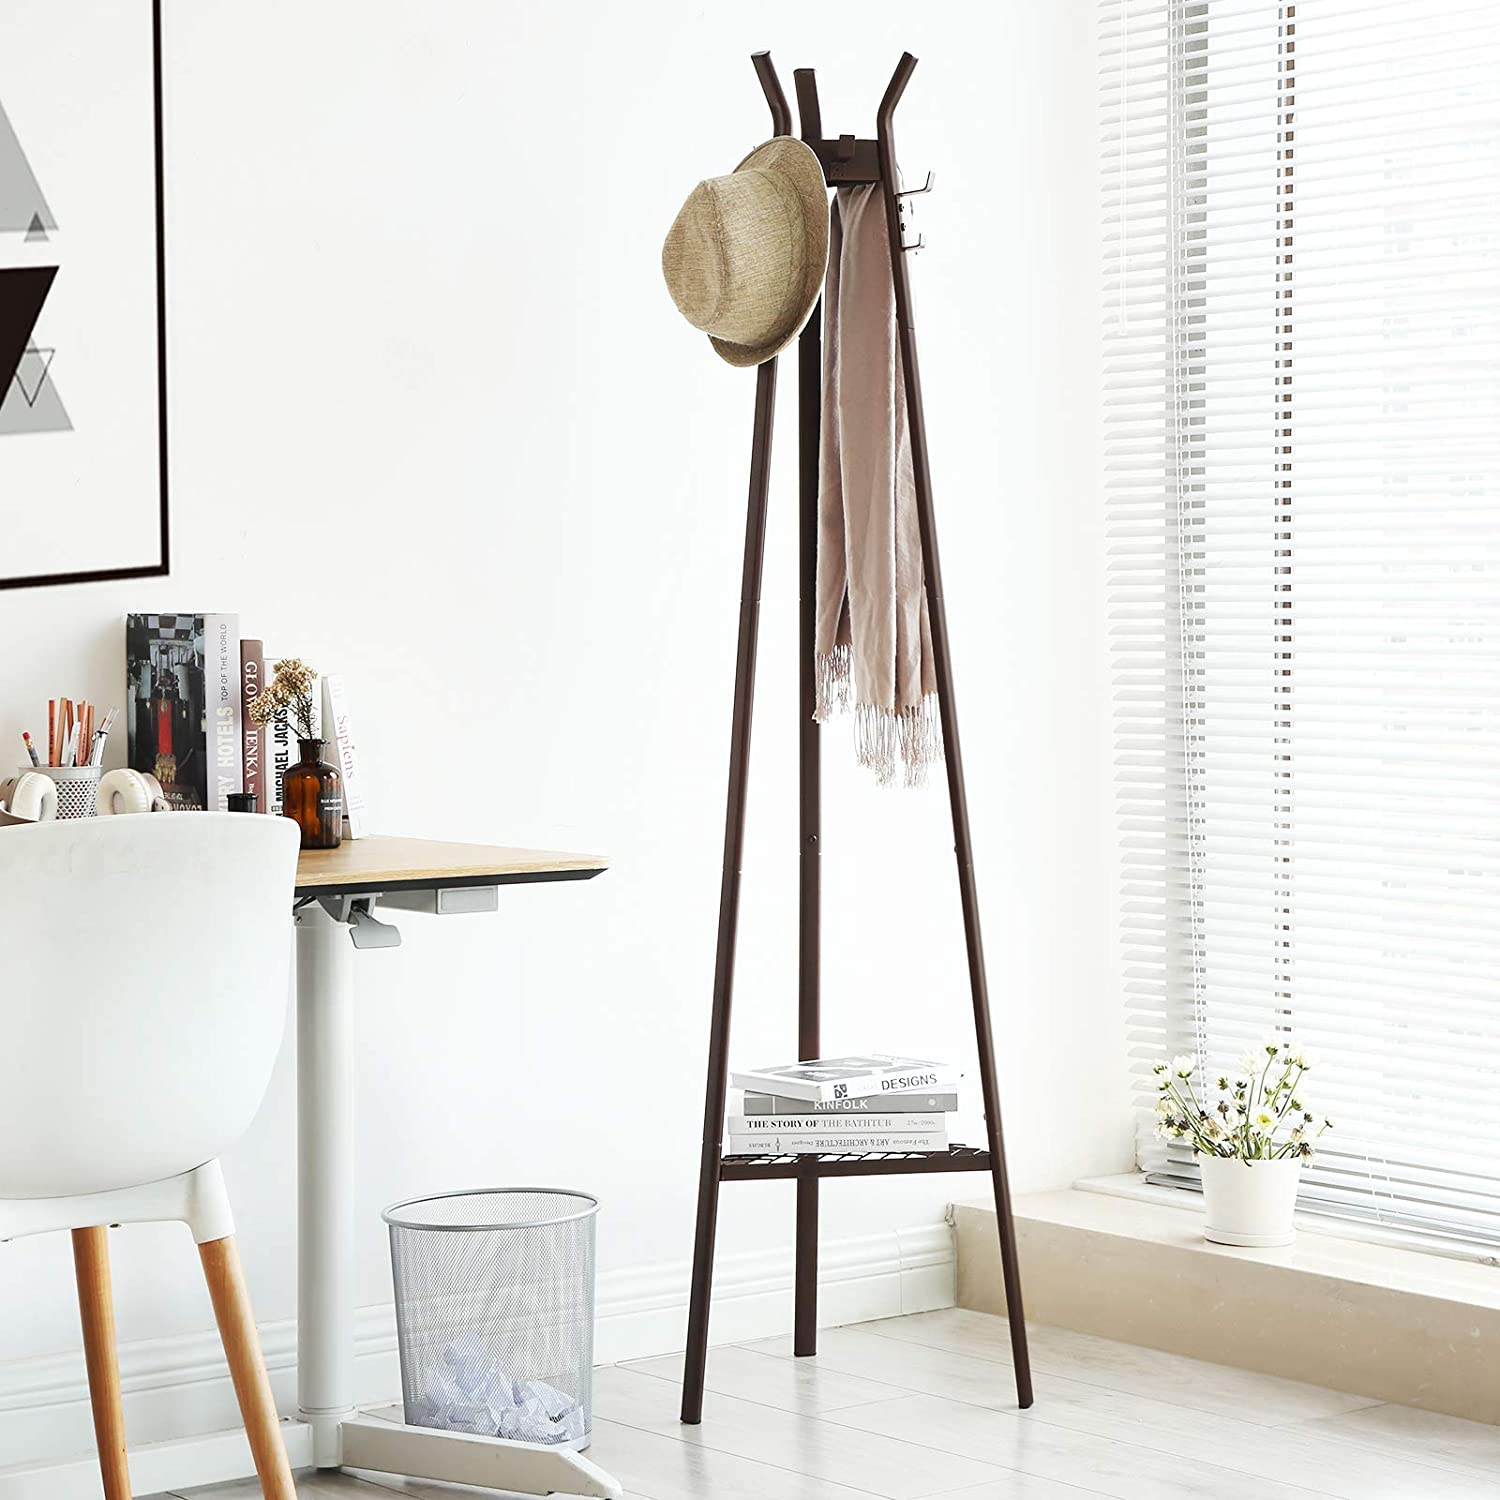 SONGMICS Coat Rack Stand, Entrance Coat Tree, Modern Style, with 3 Branches, 6 Hooks and Bottom Mesh Shelf, for Clothing, Hats, Bags, Hallway, ...